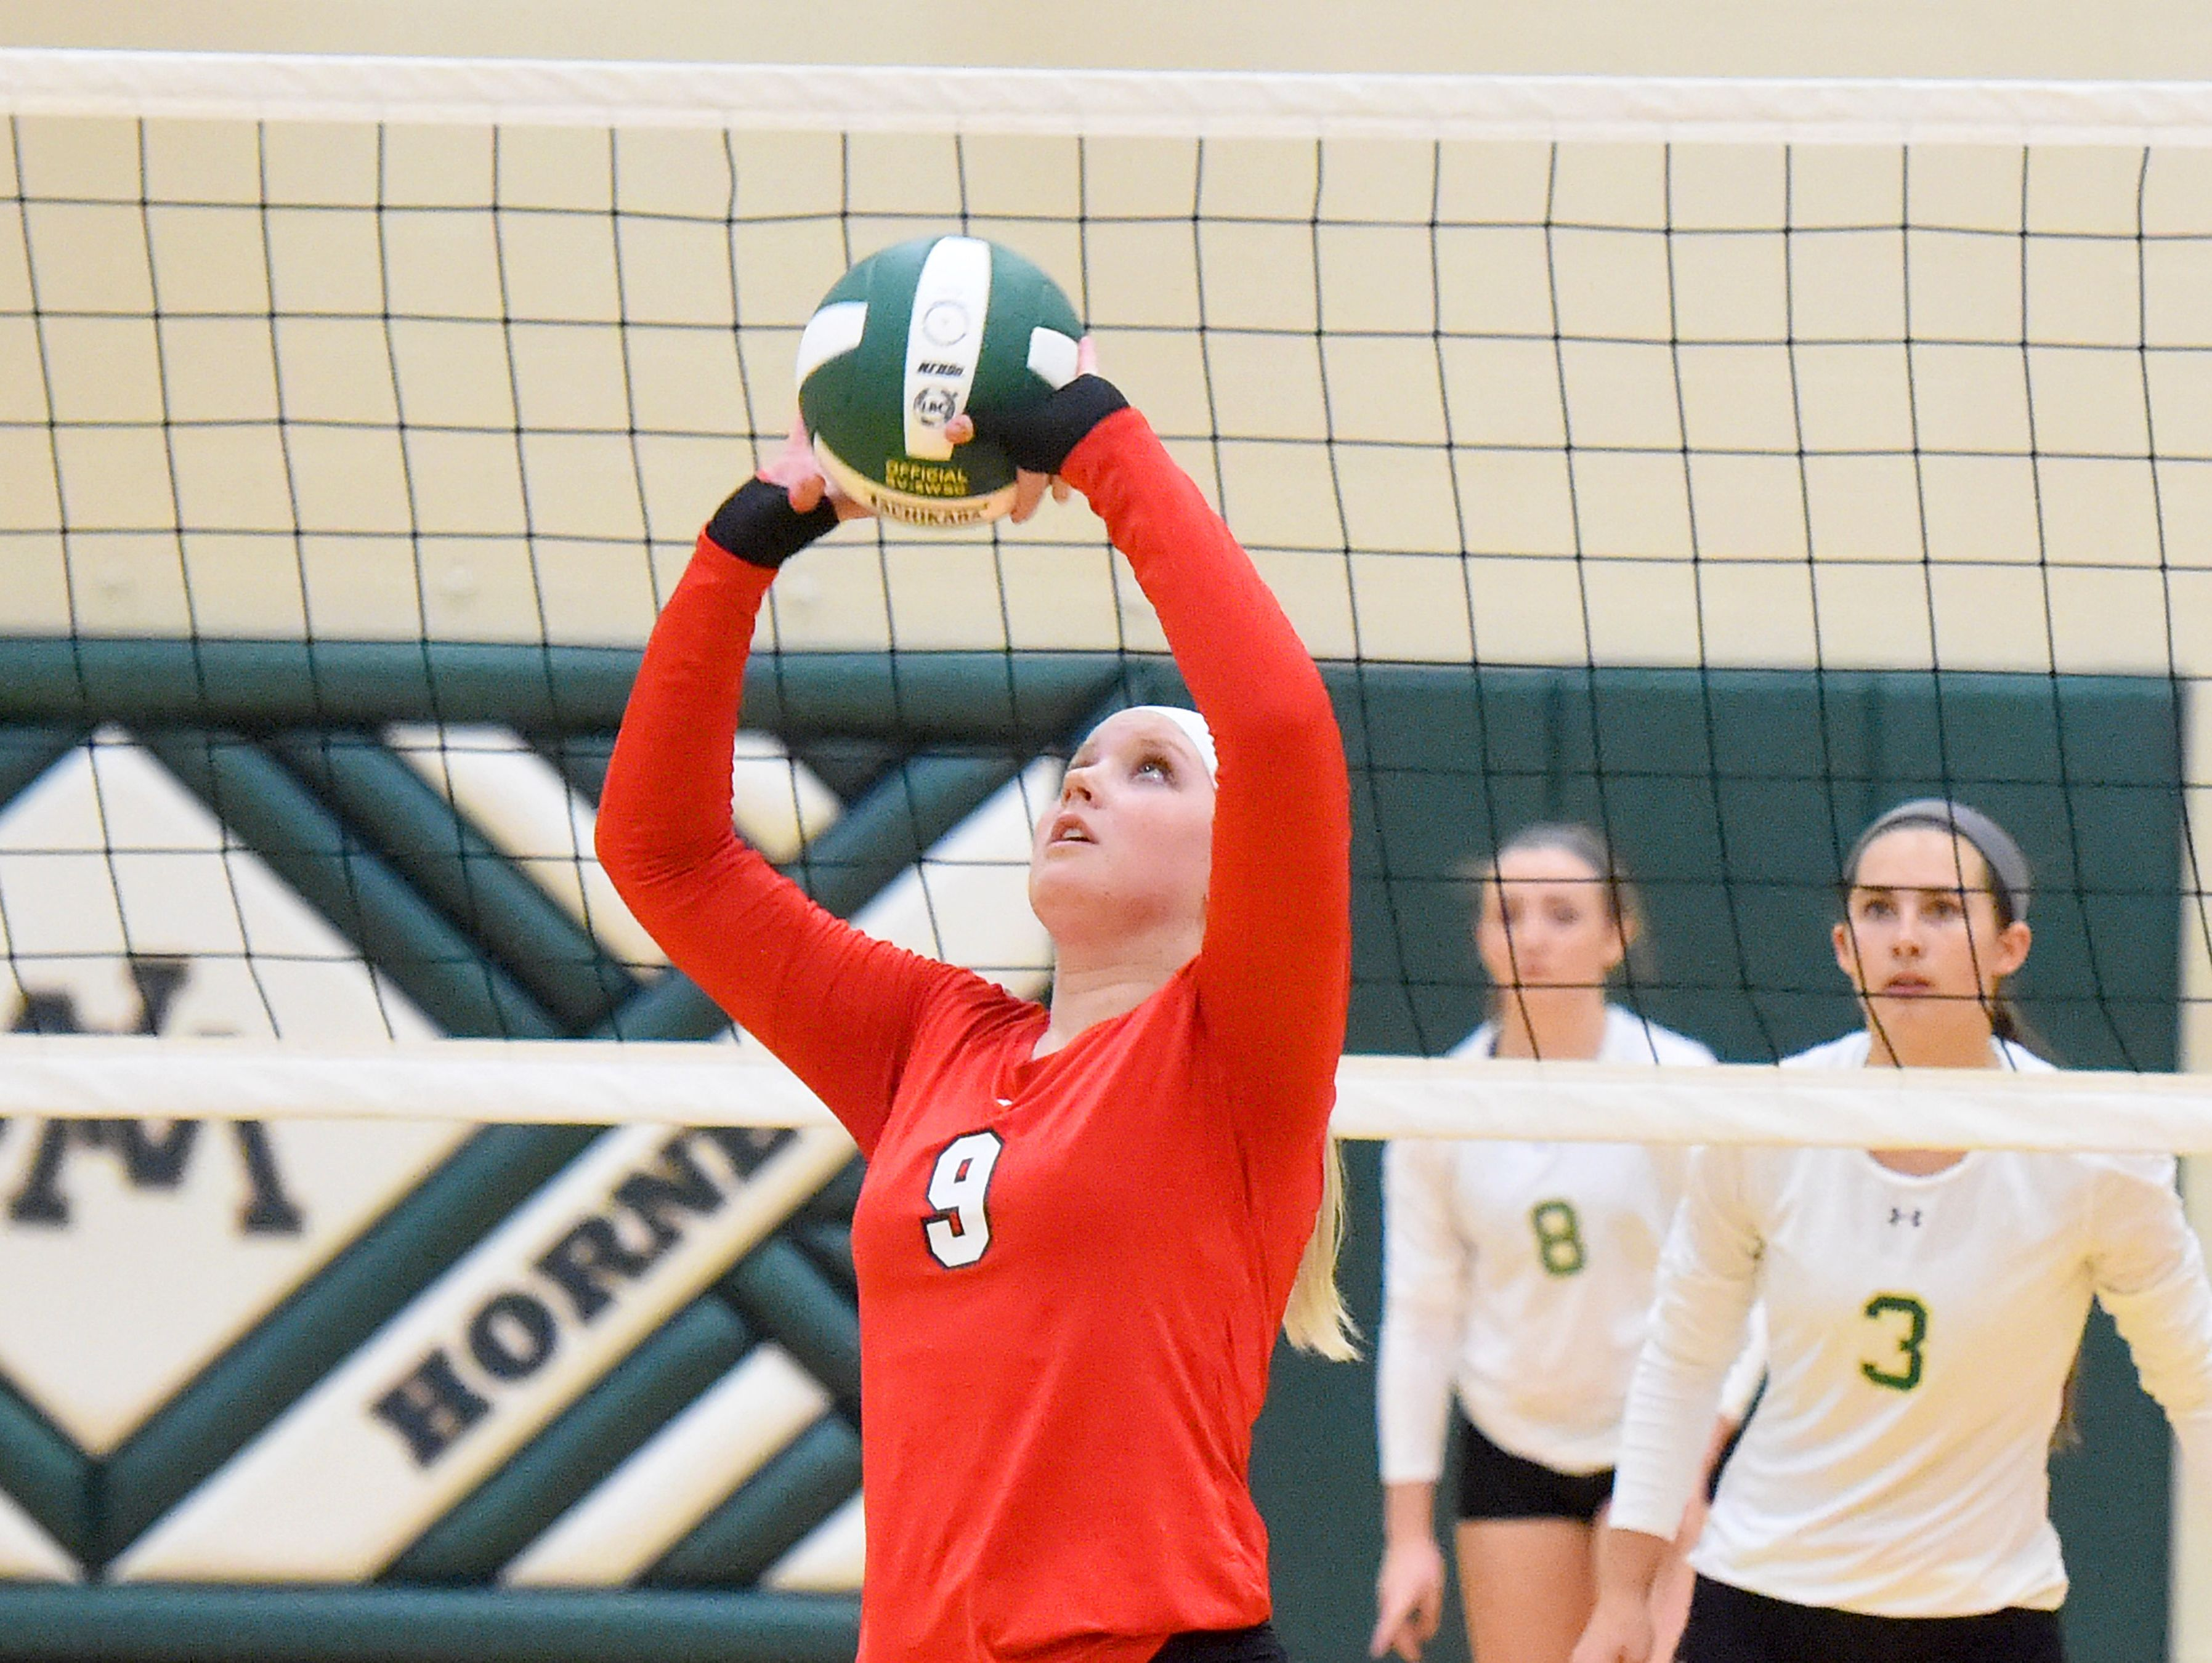 Riverheads' Macey Snyder sets the ball during a volleyball match played in Fishersville on Thursday, Oct. 20, 2016.